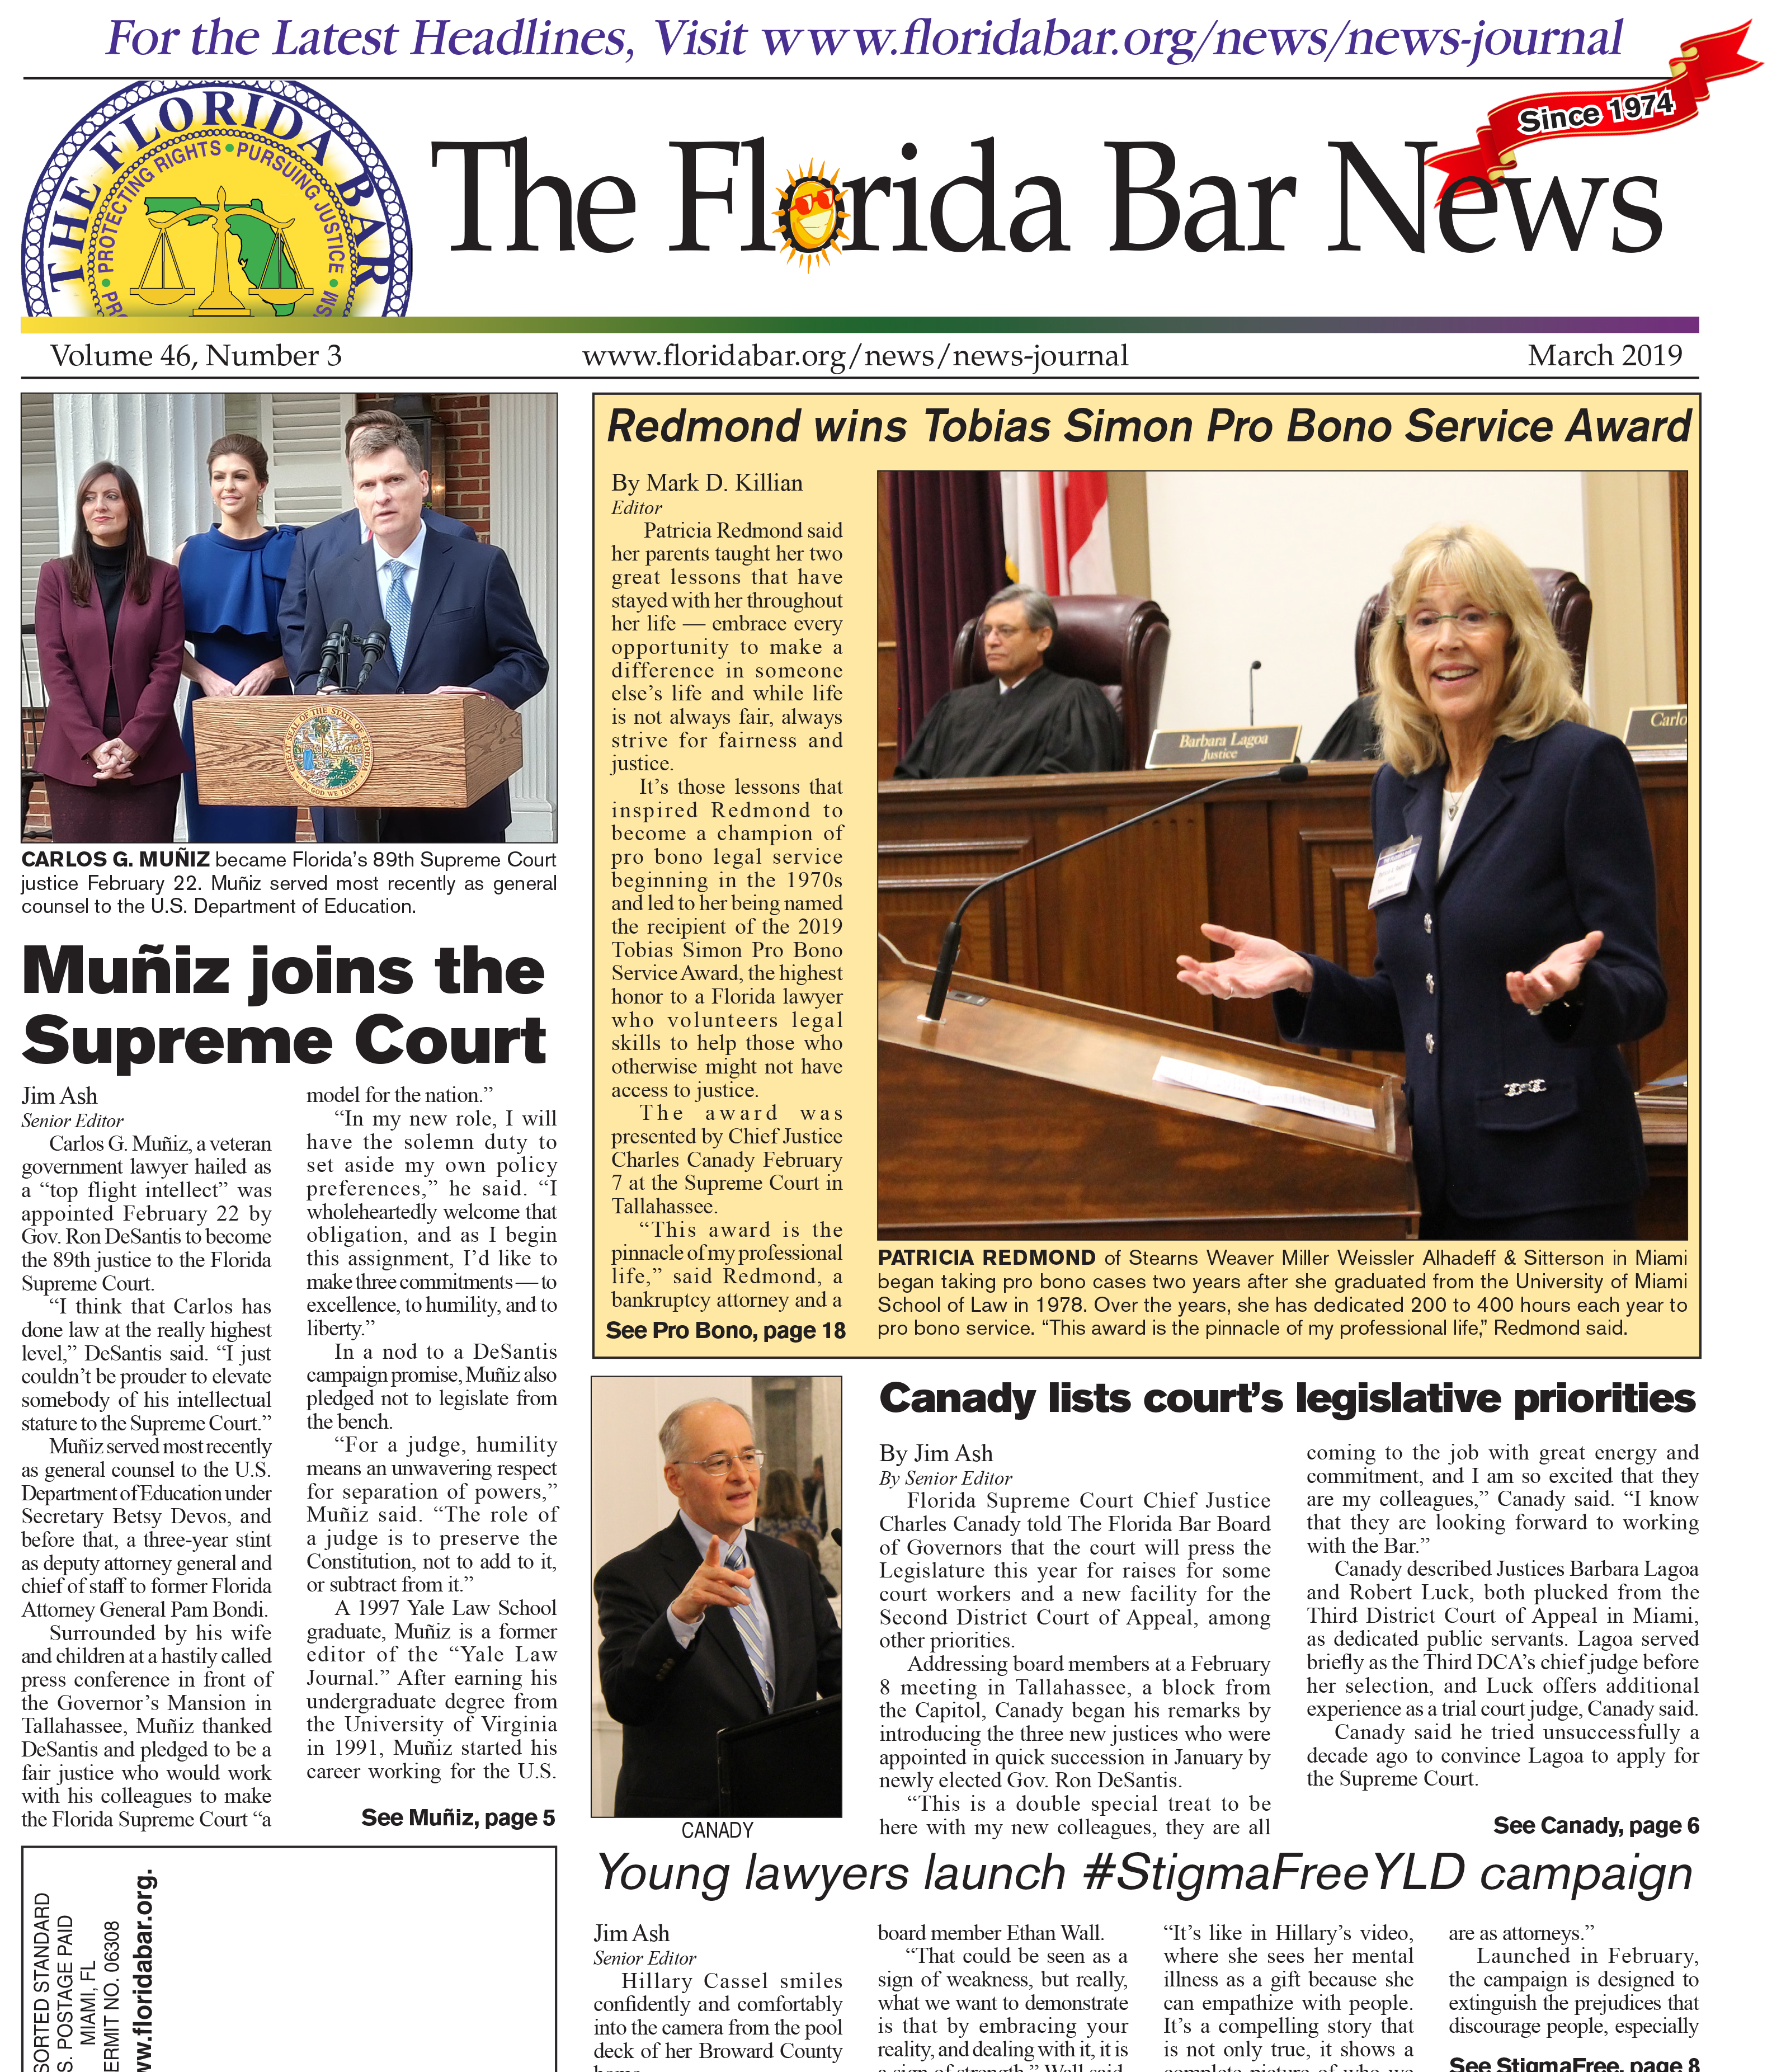 The Florida Bar News March 2019